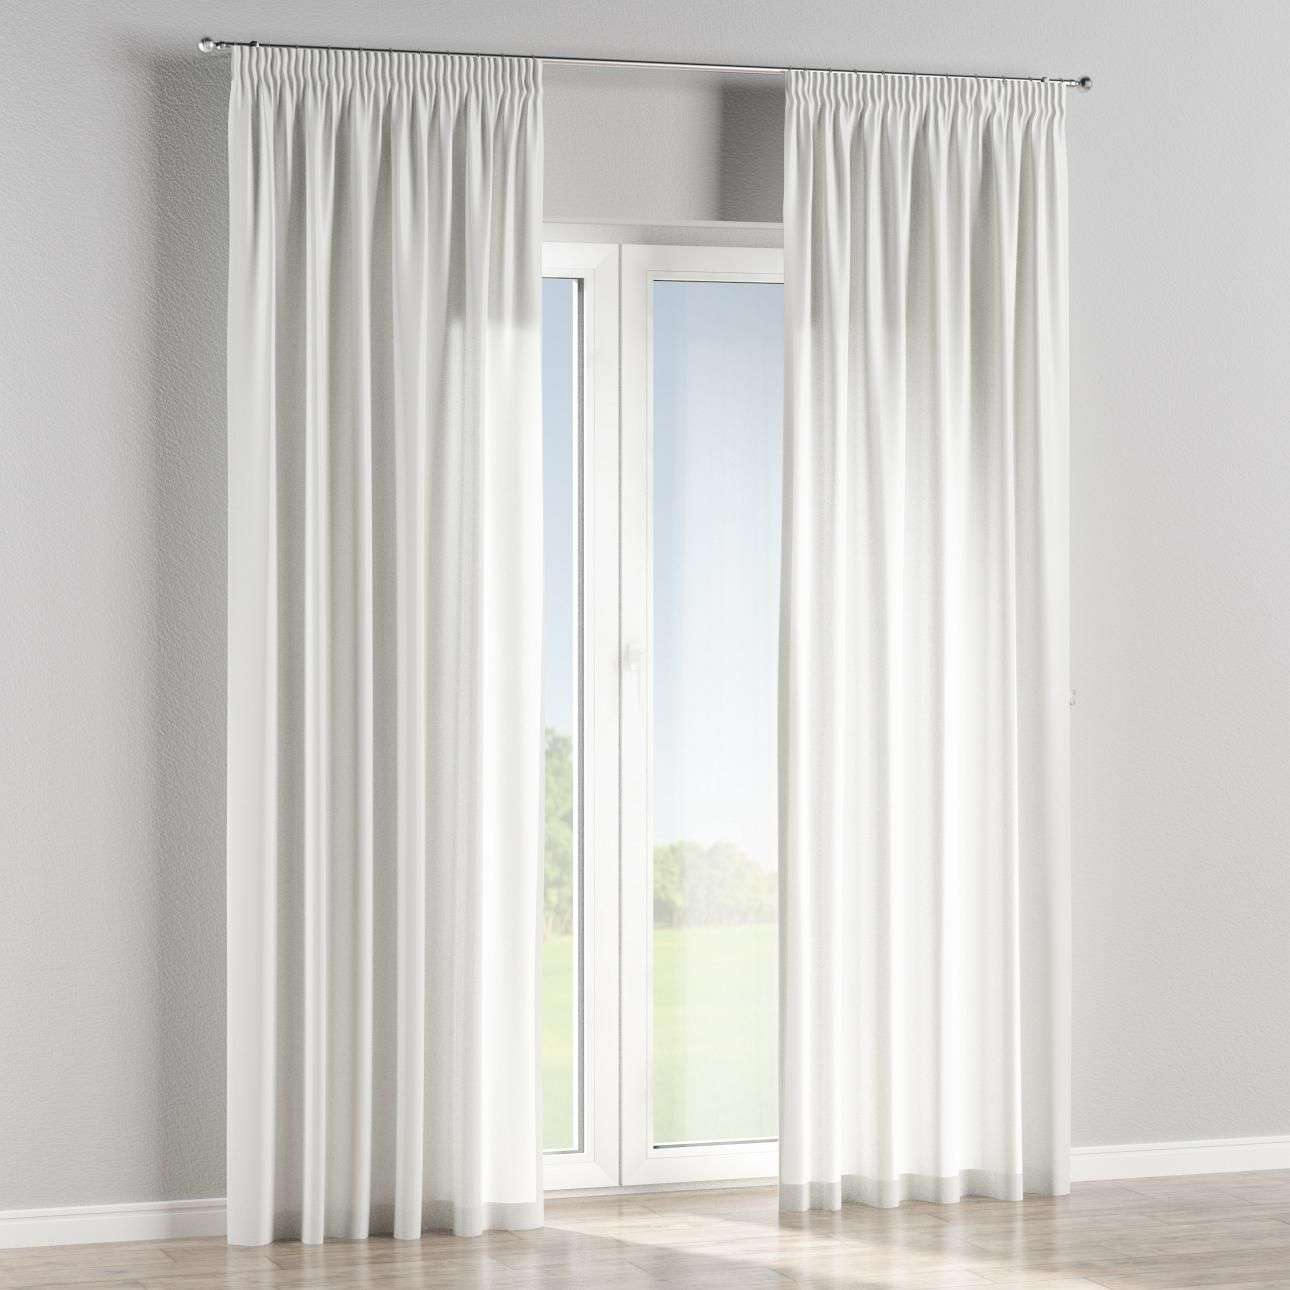 Pencil pleat curtains in collection Norge, fabric: 150-10